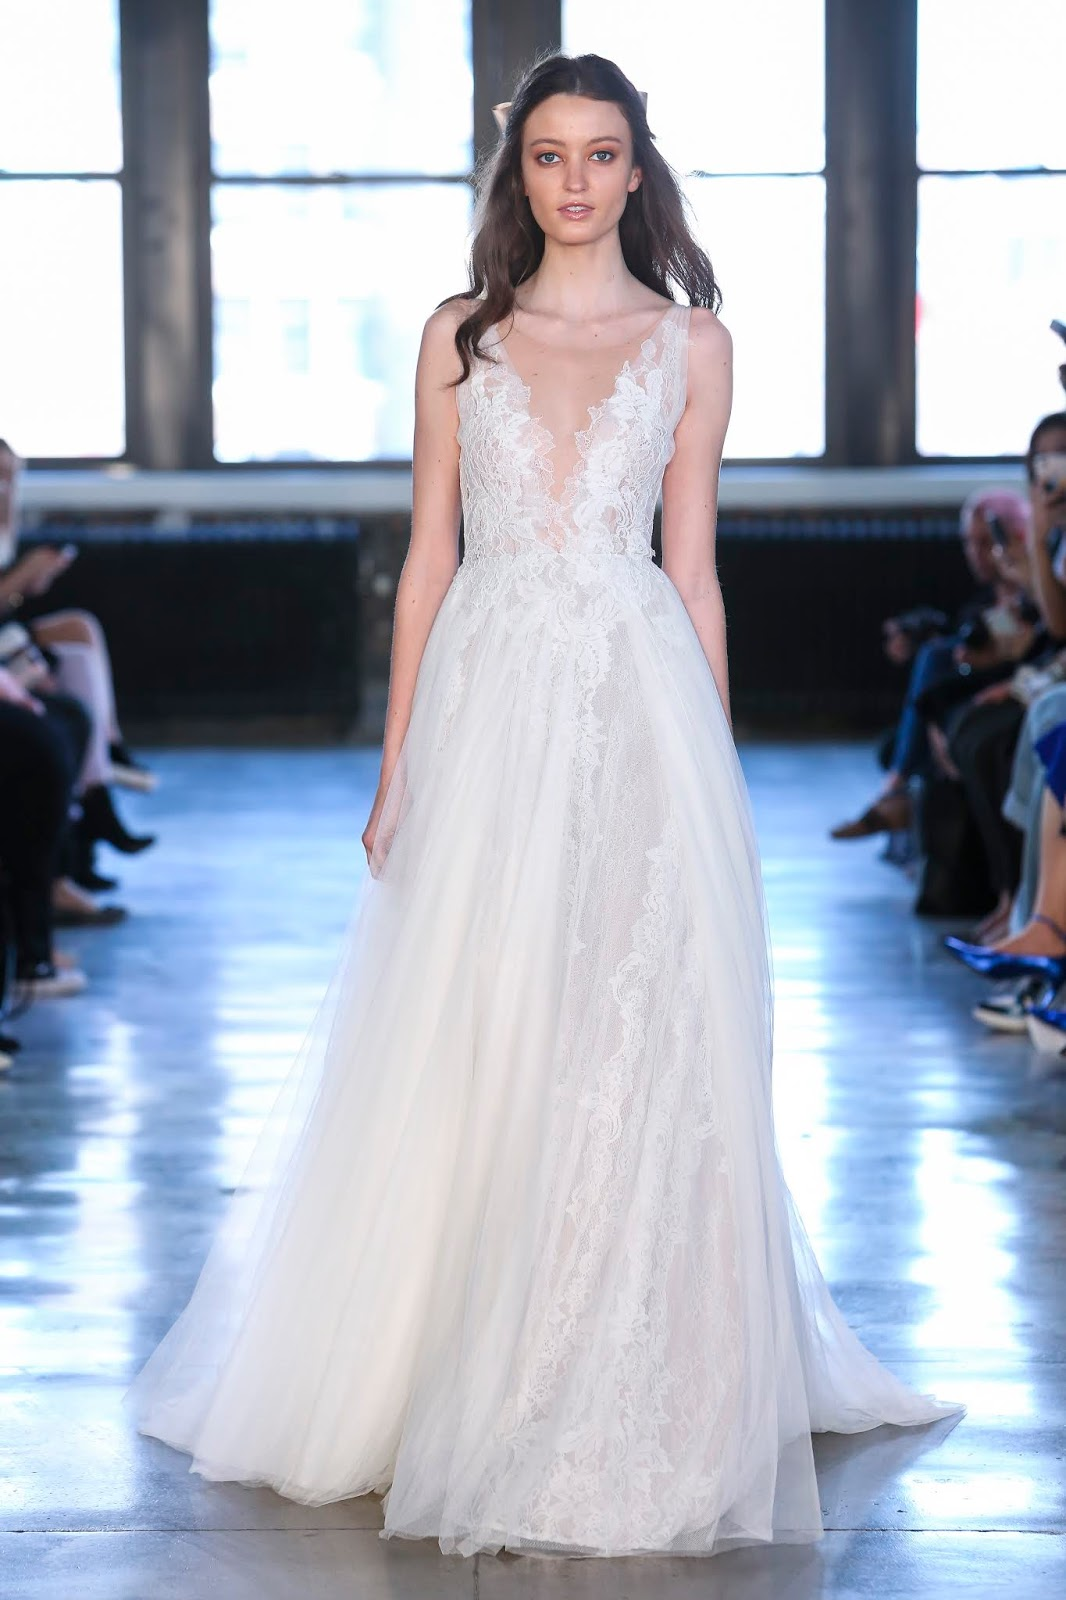 29e447b1499 ... when it comes to 10 bridal gowns I cherry-picked from her boutique  (each as glorious as the one before it). You never know